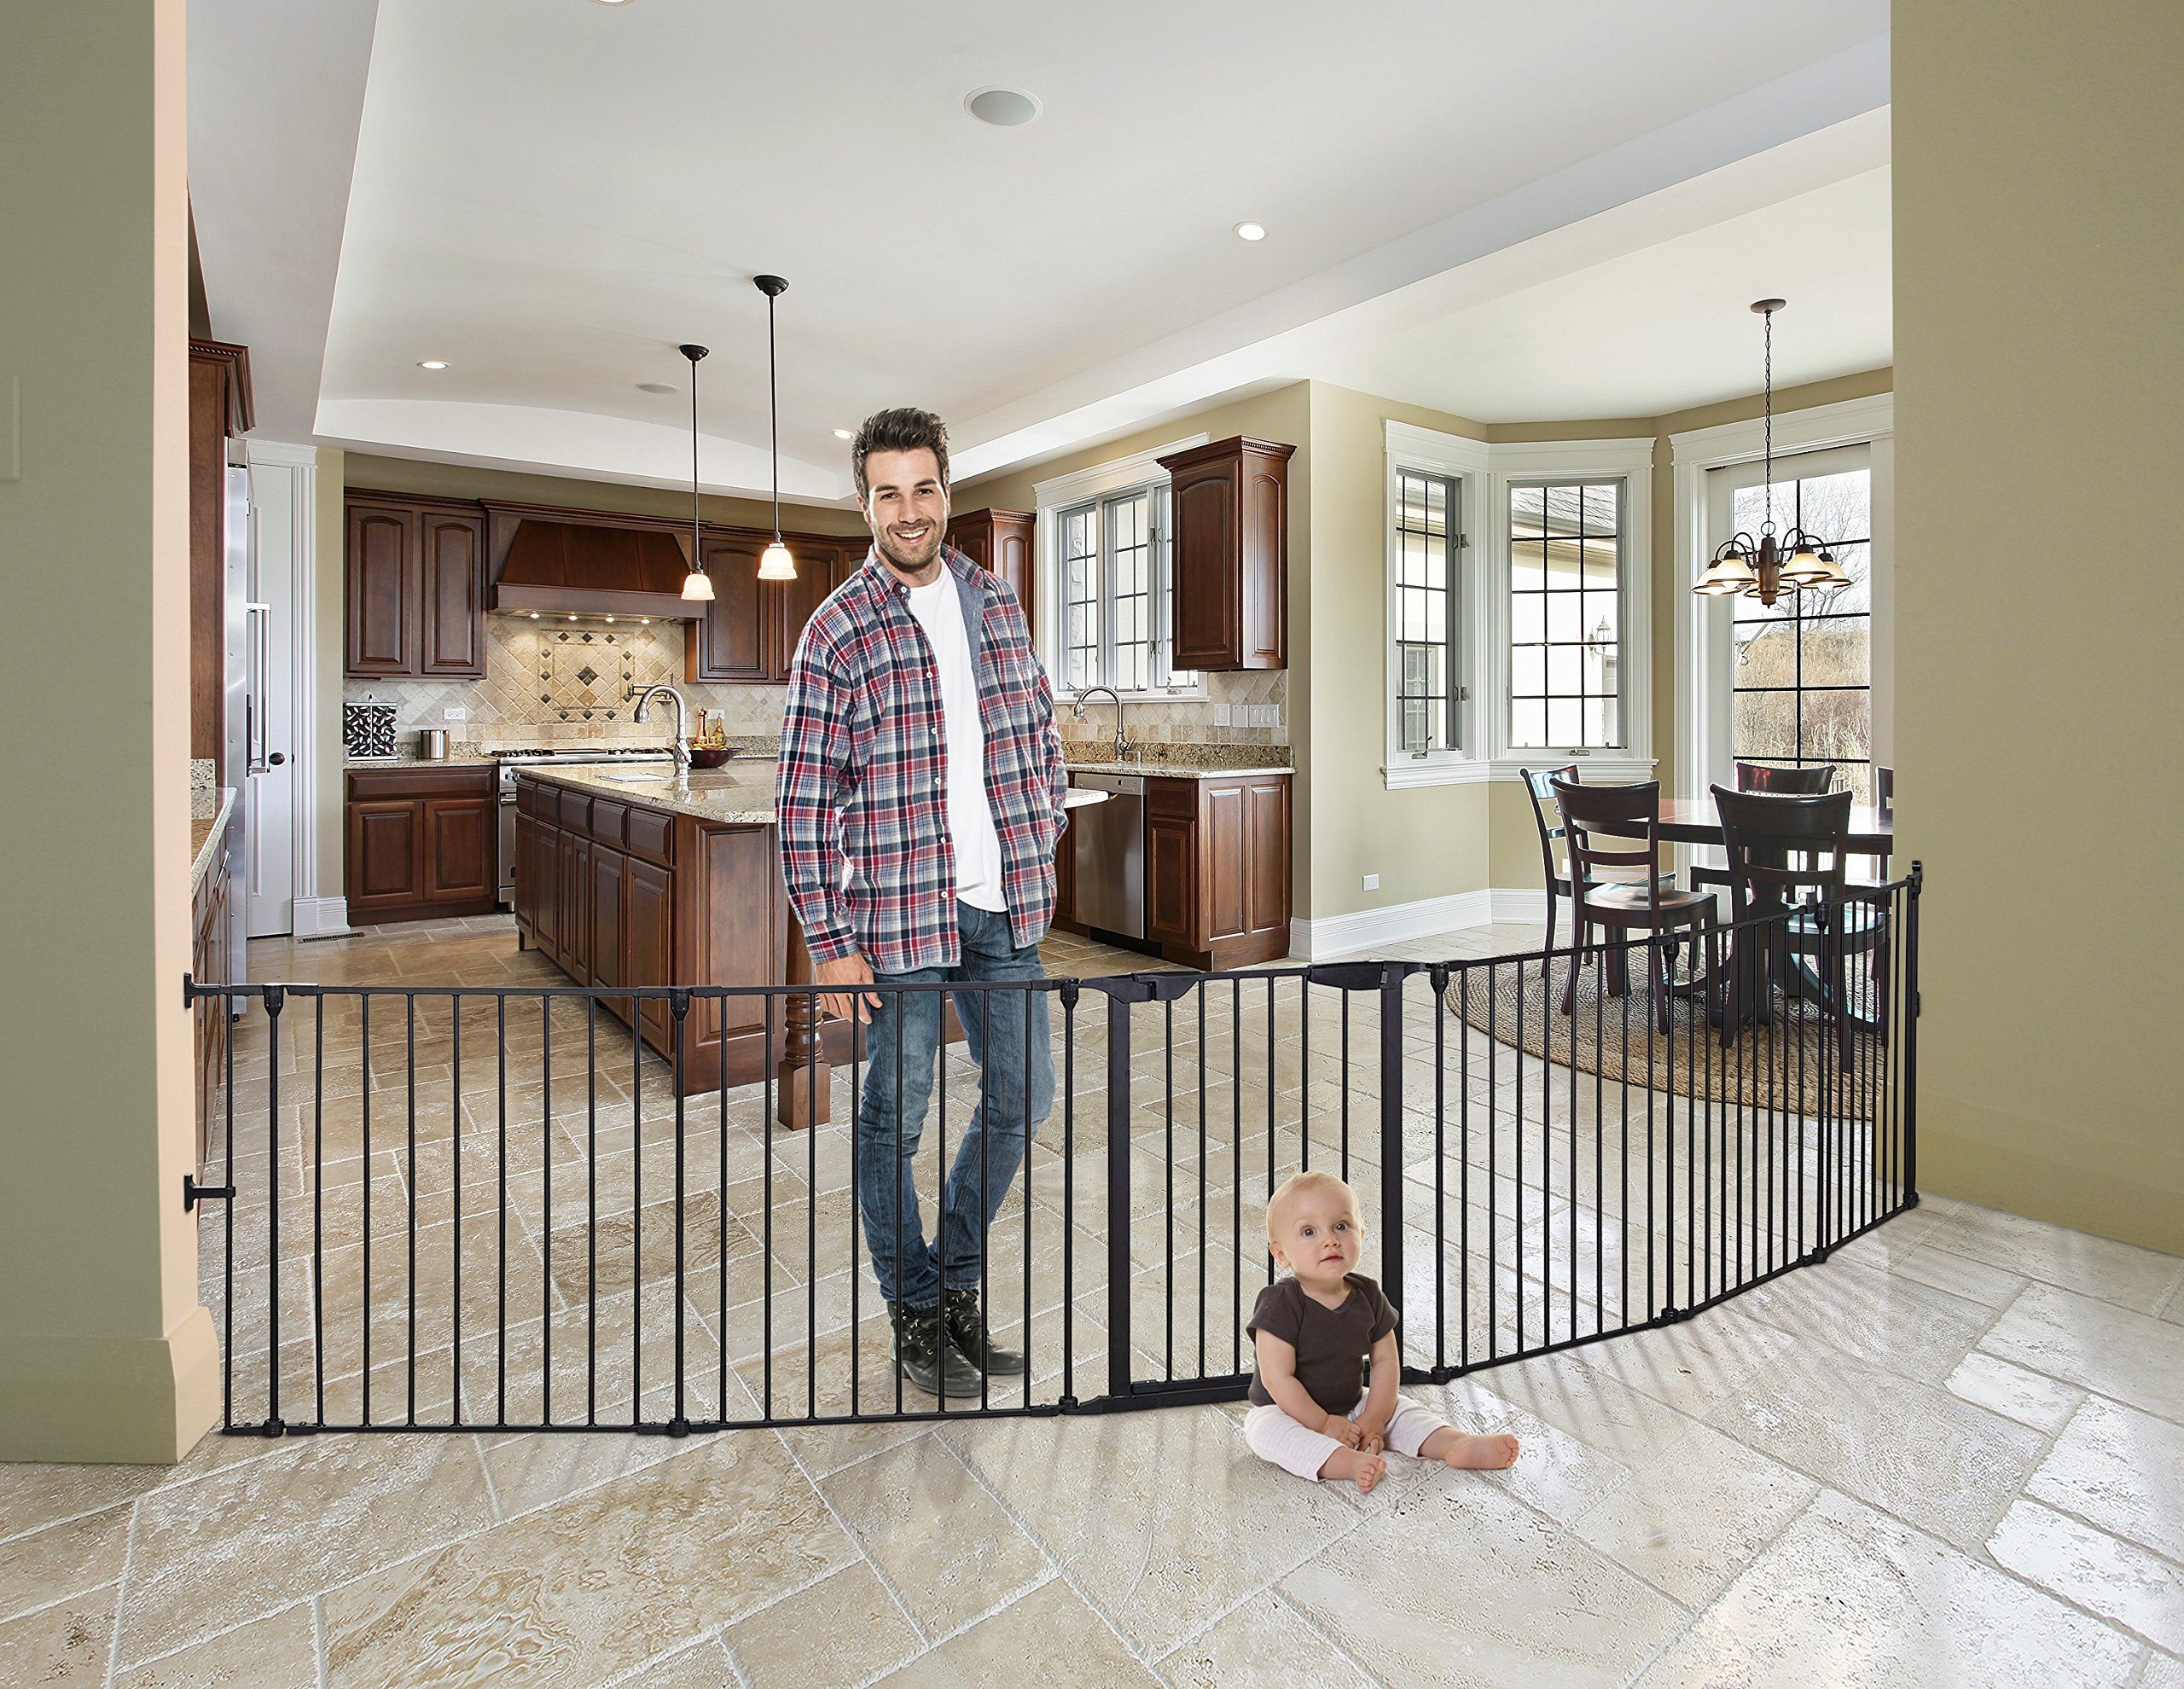 Dreambaby Mayfair Converta 3 In 1 Play-pen 6 Panel Gate, Black by Dreambaby (Image #3)